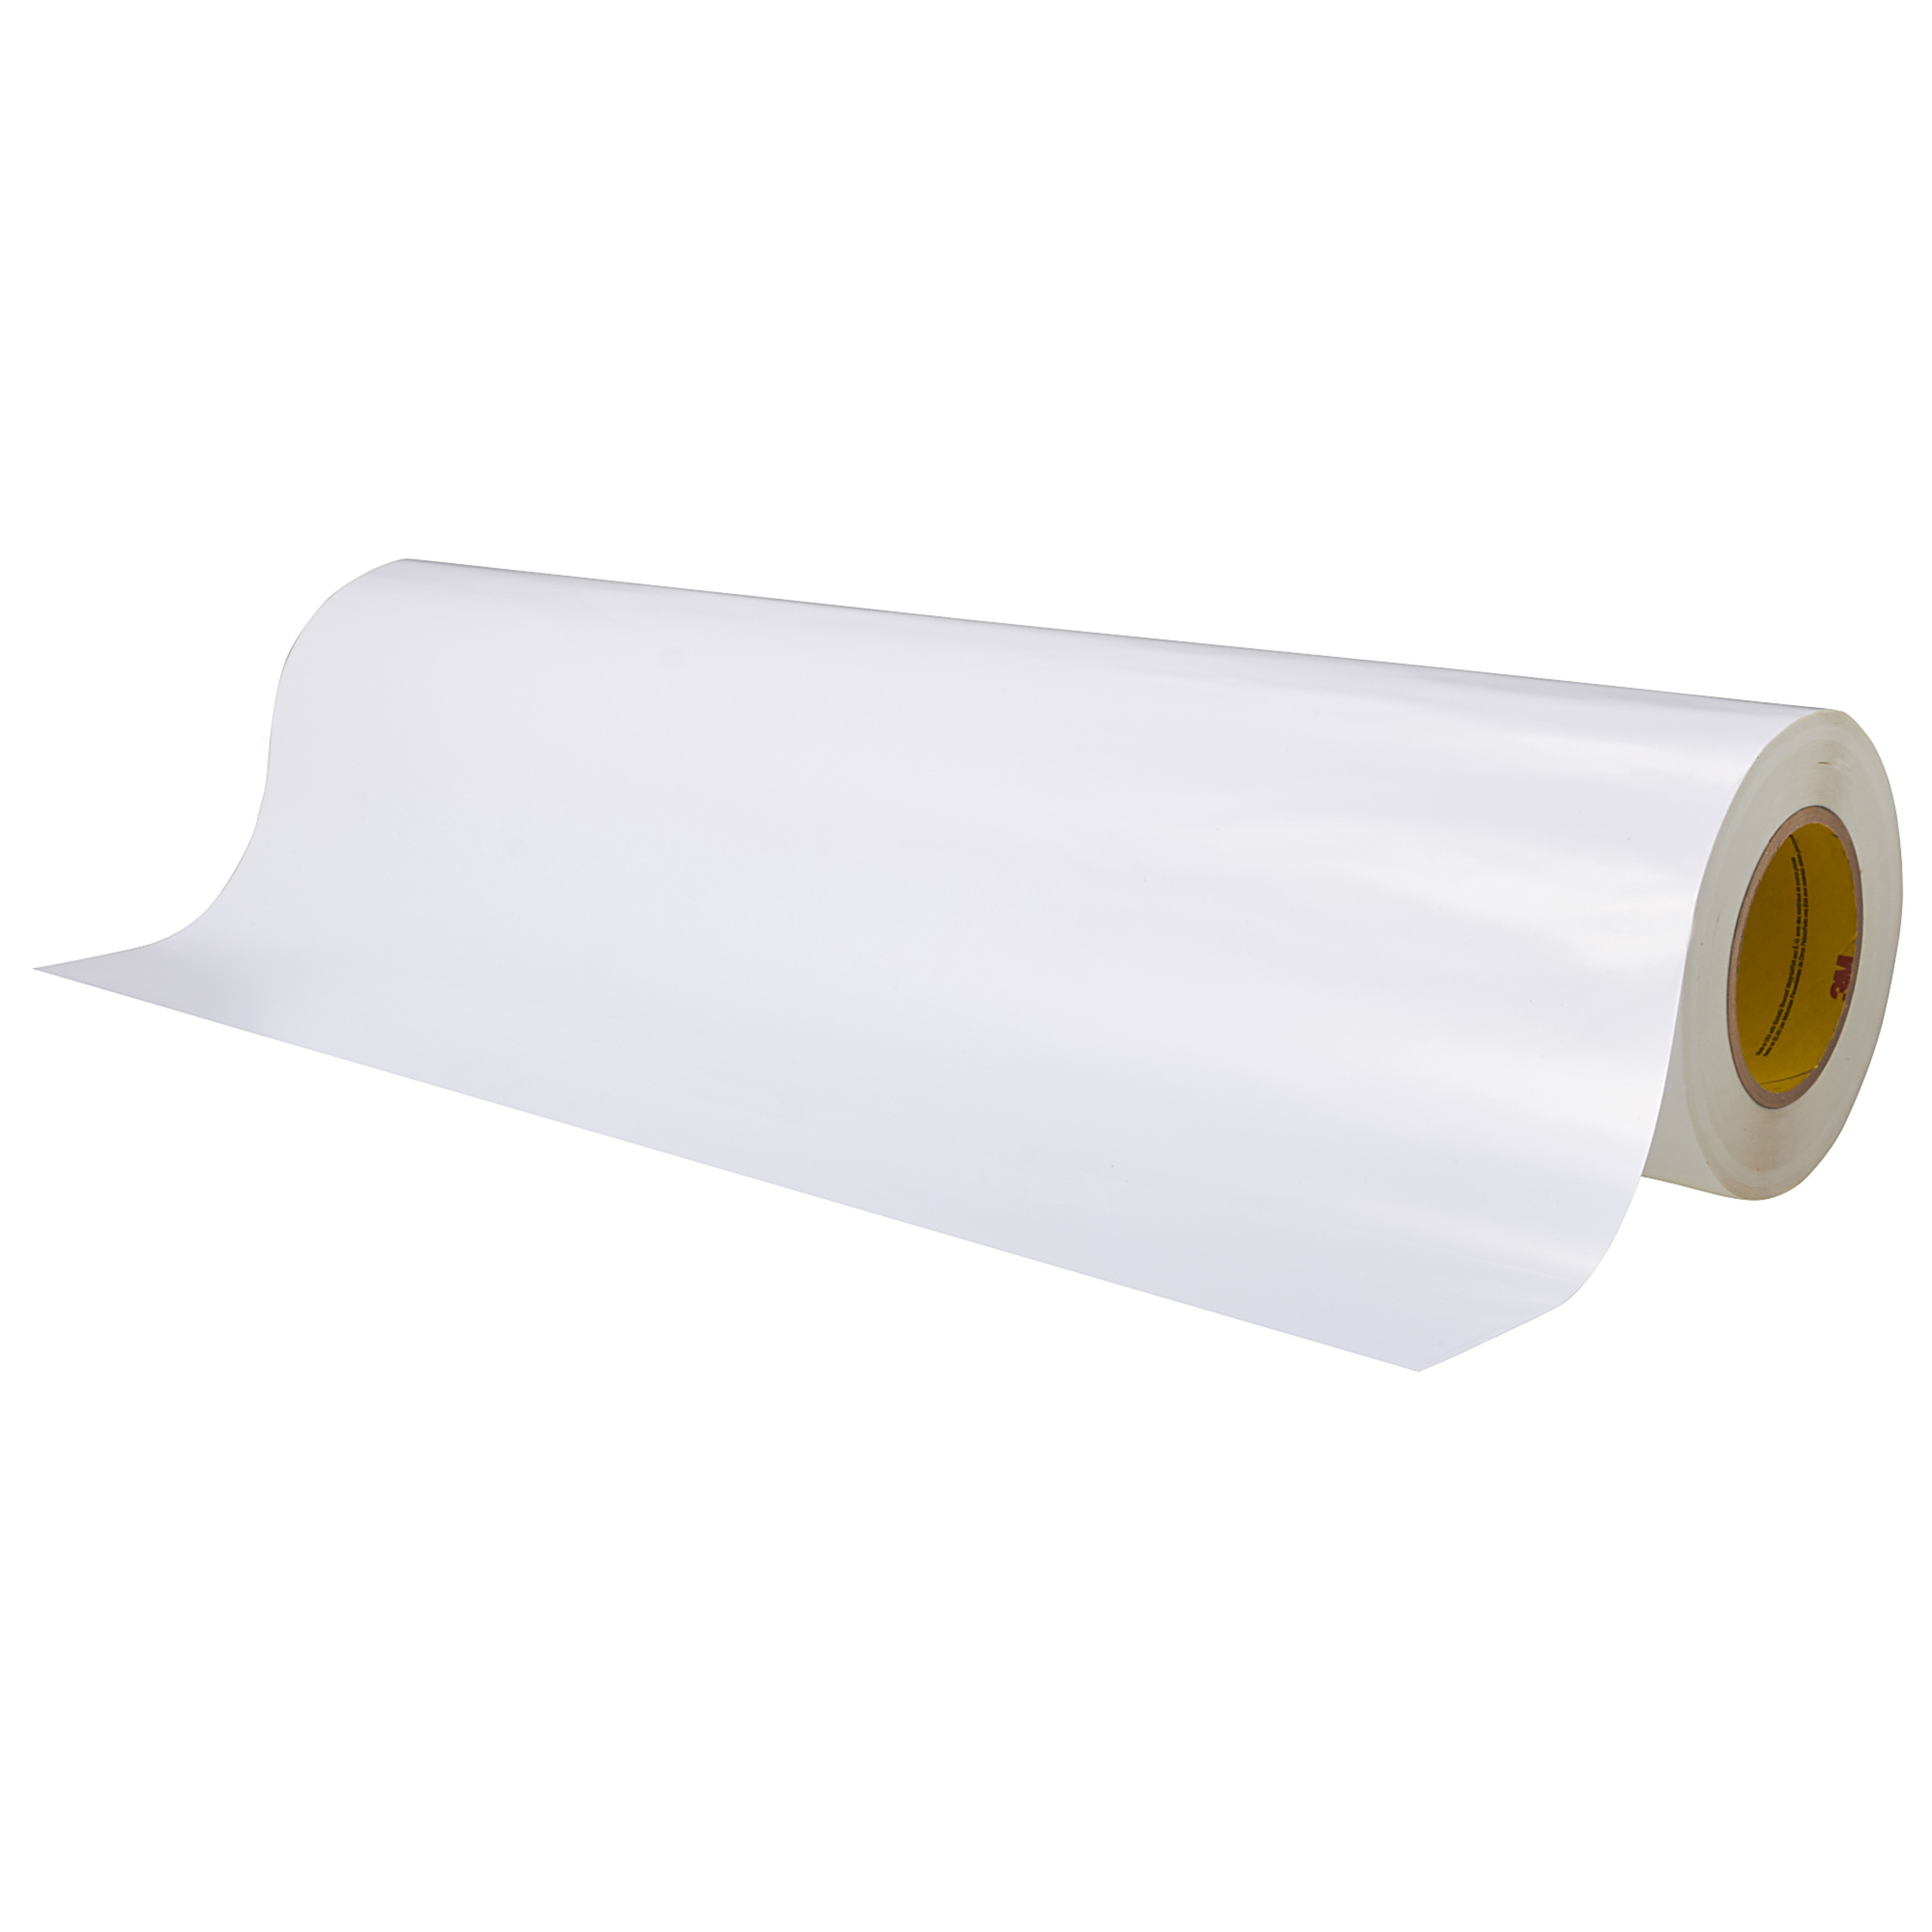 3M™ Double Coated Tape 96042, Clear, 18 in x 60 yd, 5 mil, 1 roll per case